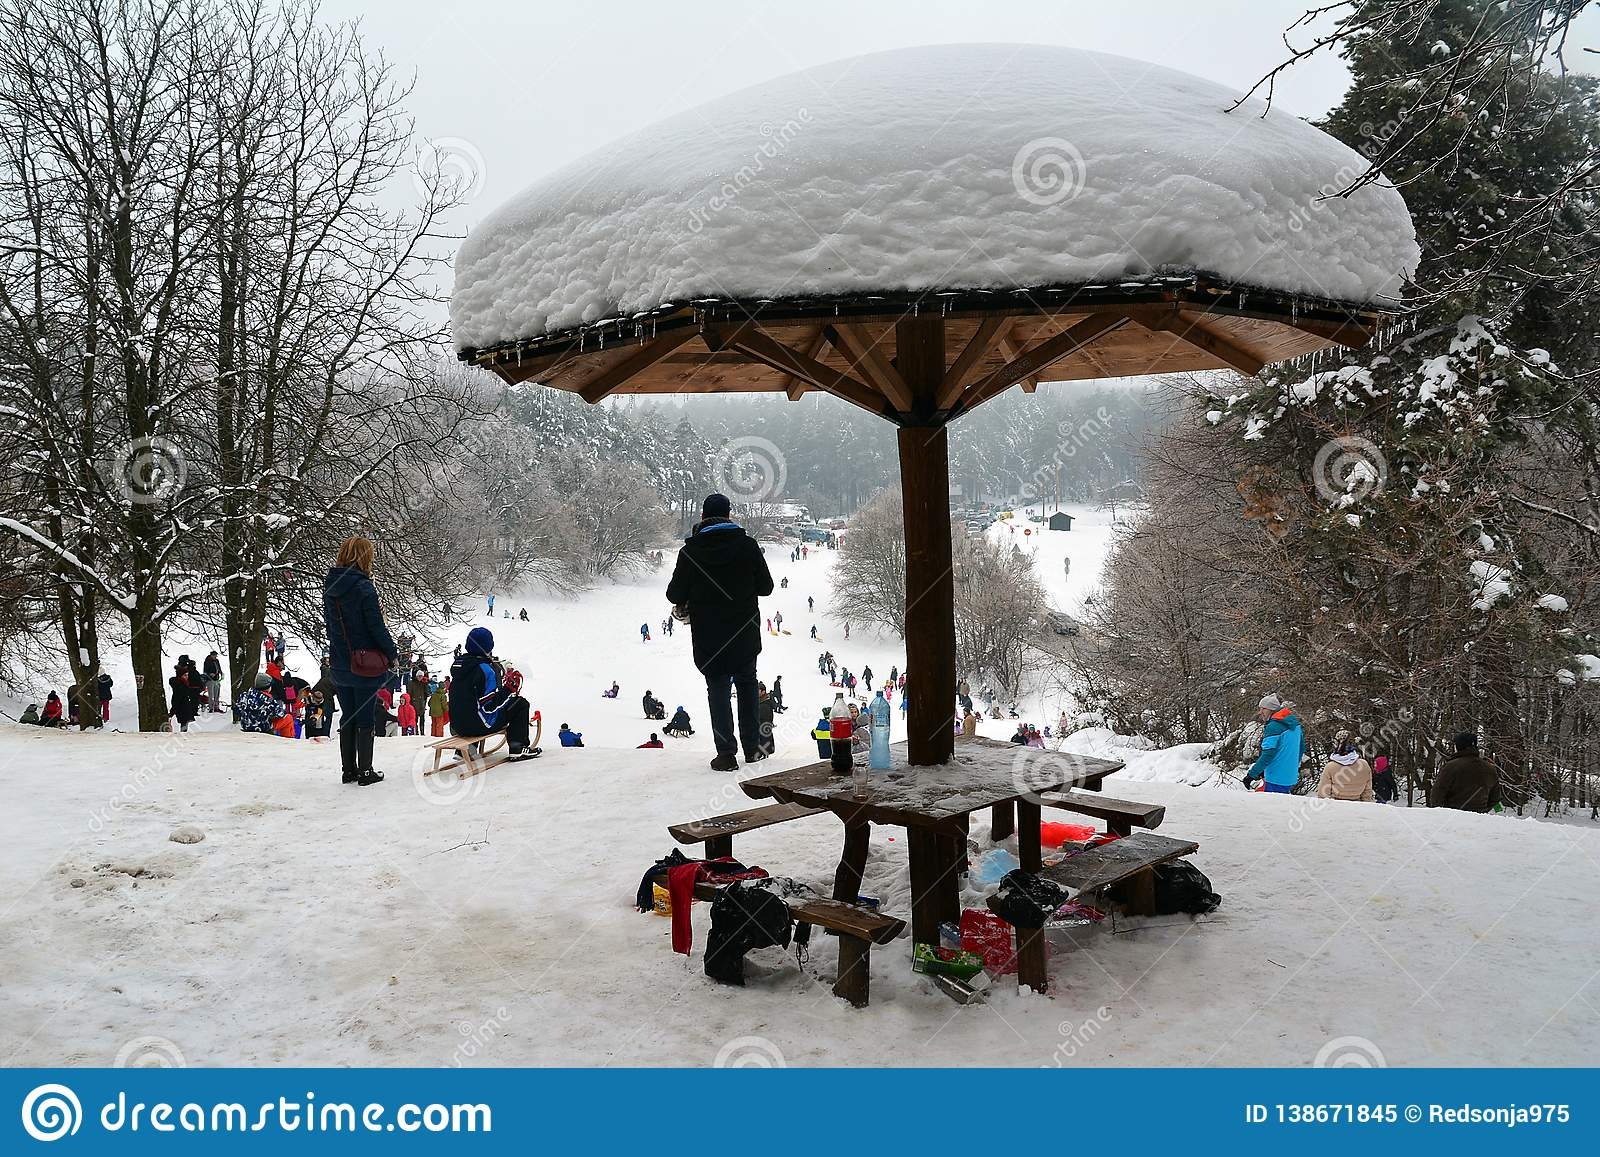 Resting place for people as snow mushroom